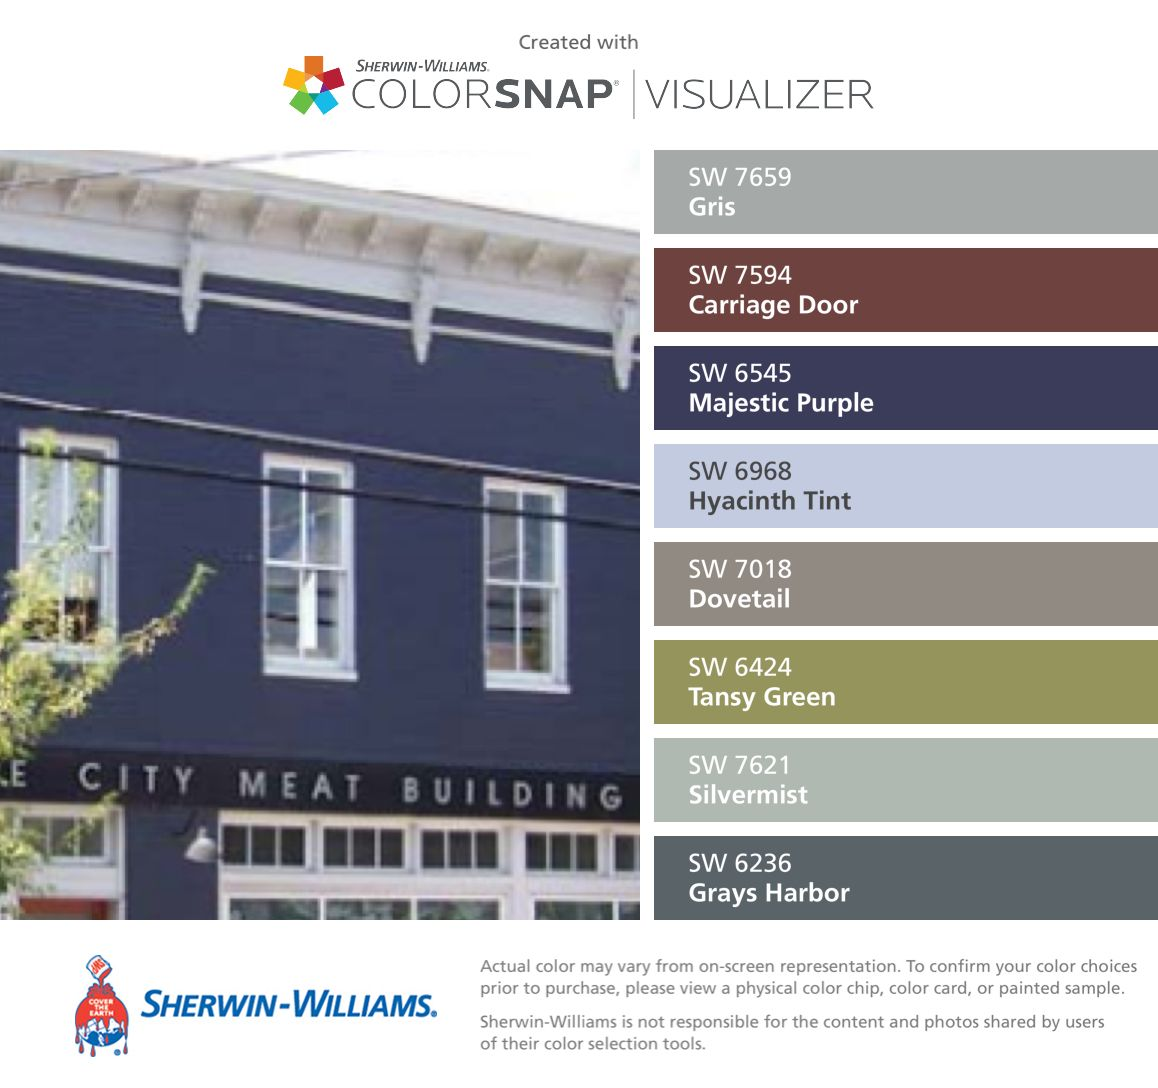 I found these colors with ColorSnap® Visualizer for iPhone by Sherwin-Williams: Gris (SW 7659), Carriage Door (SW 7594), Majestic Purple (SW 6545), Hyacinth Tint (SW 6968), Dovetail (SW 7018), Tansy Green (SW 6424), Silvermist (SW 7621), Grays Harbor (SW 6236).